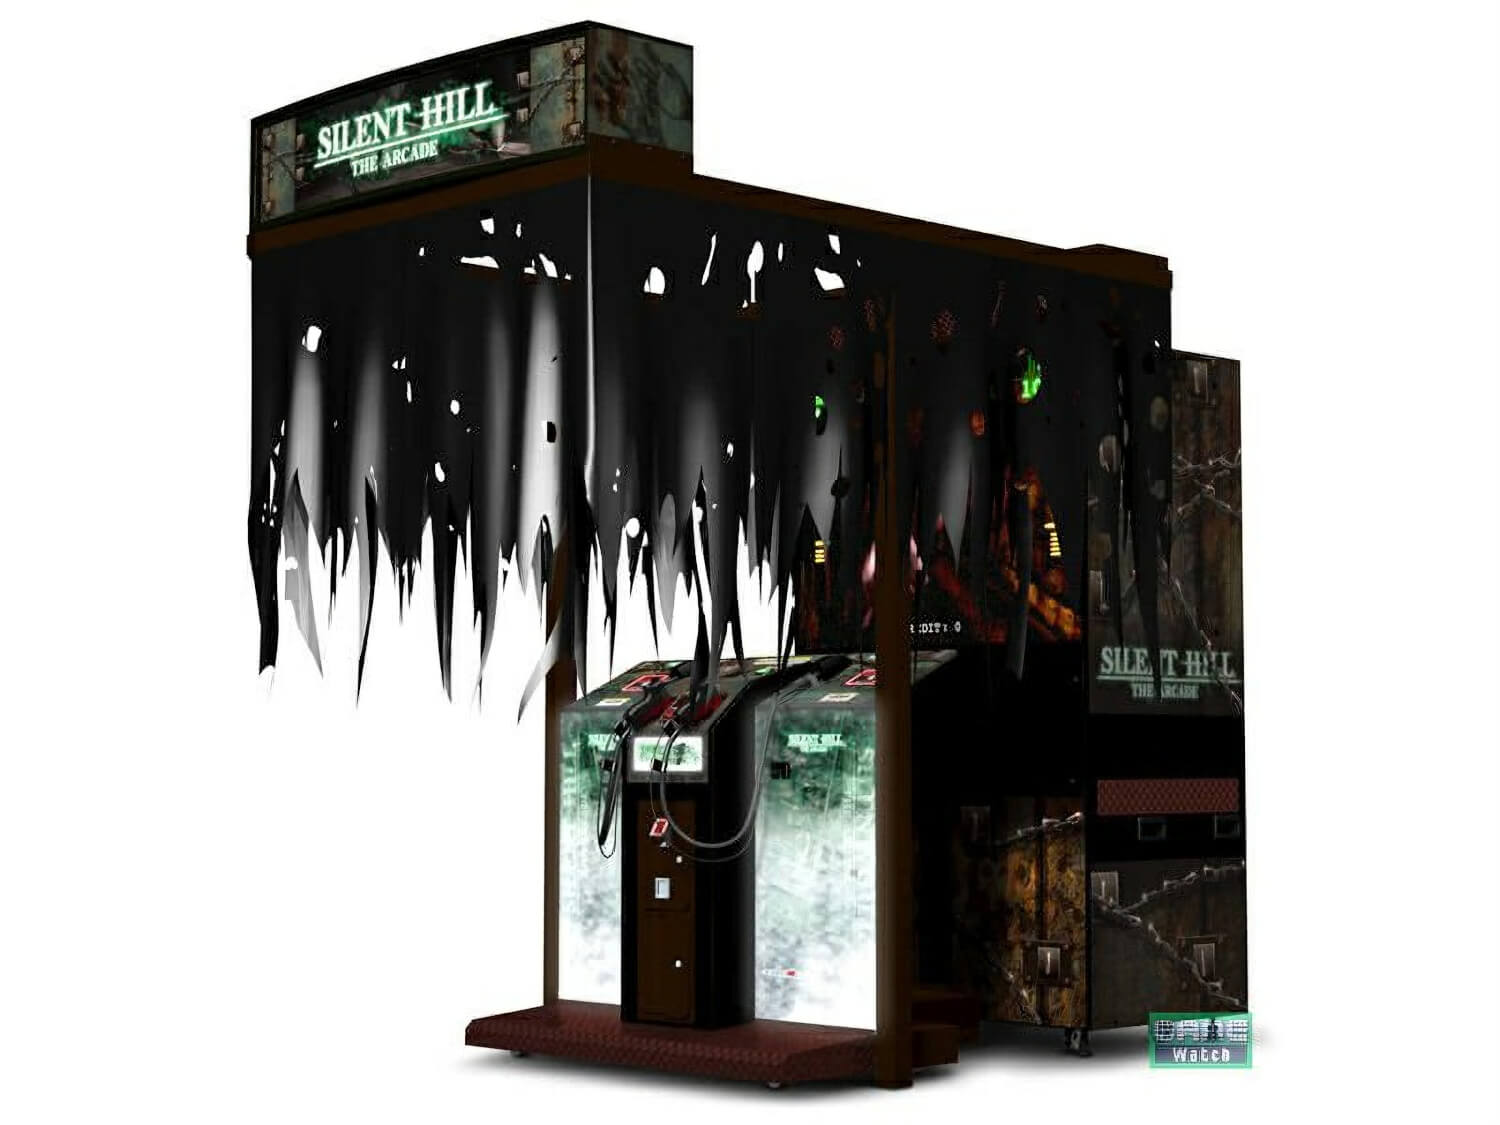 Silent Hill The Arcade Deluxe Arcade Machine Liberty Games